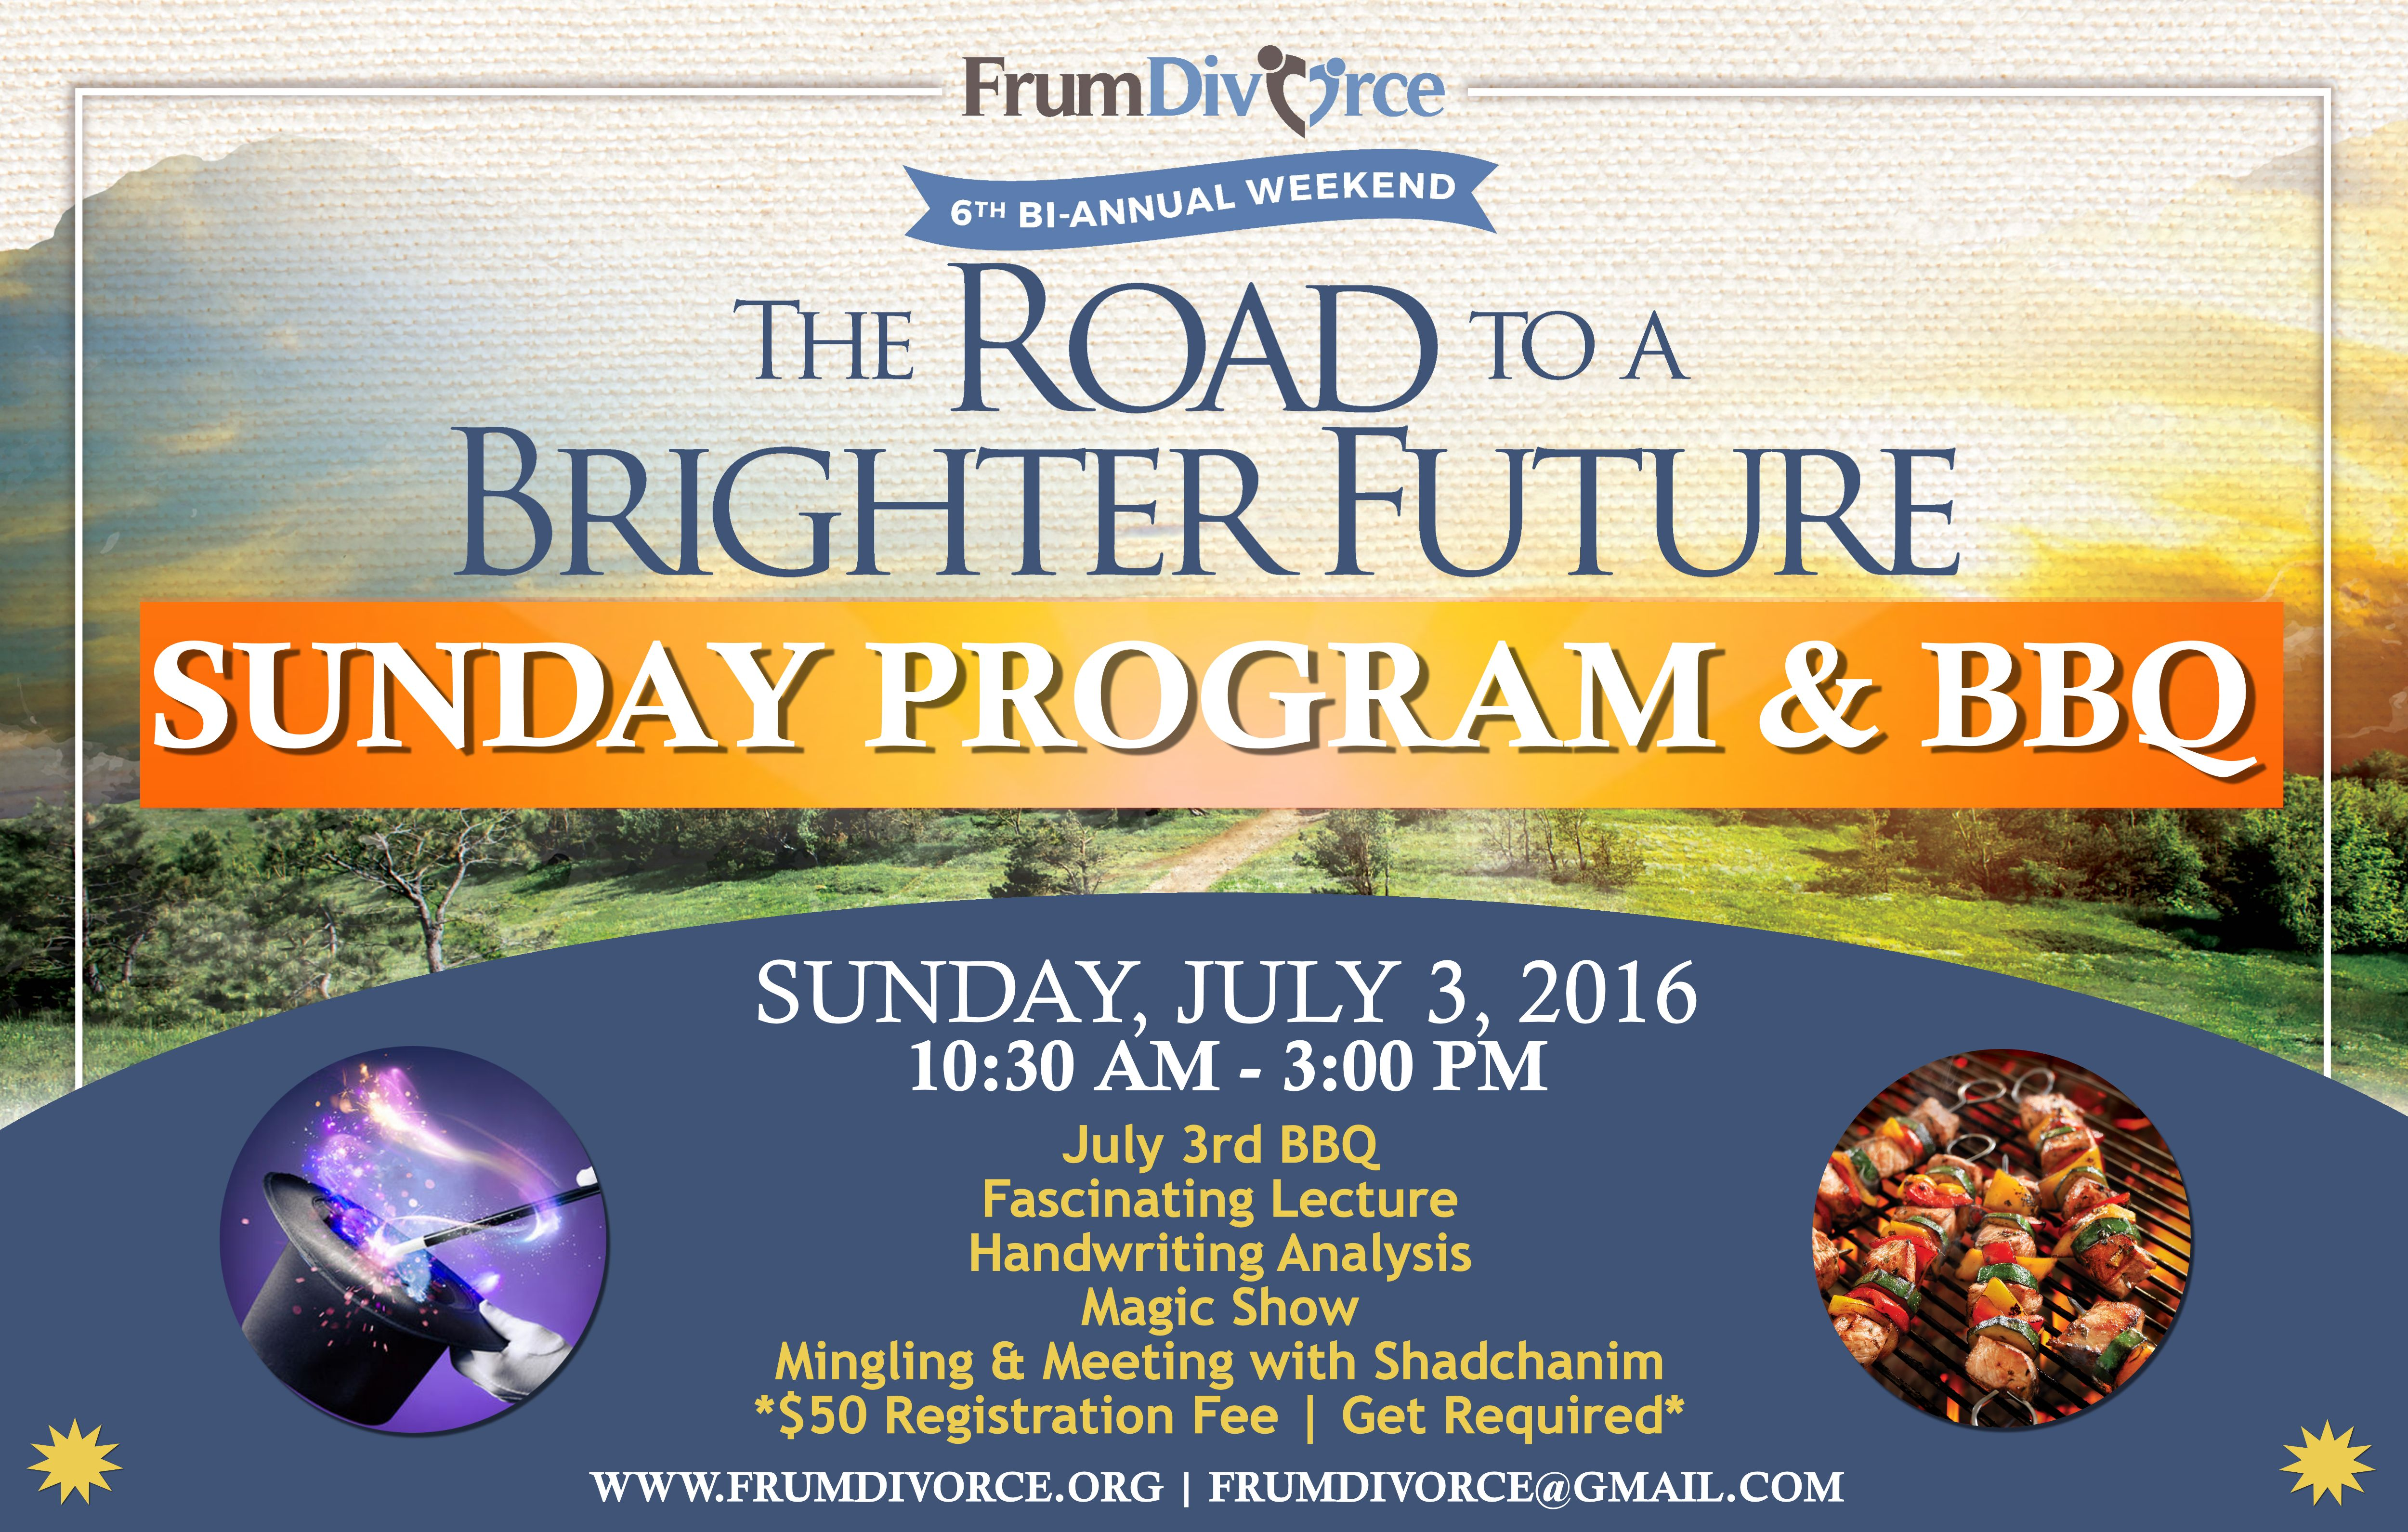 The Road to a Brighter Future: Sunday Program & BBQ